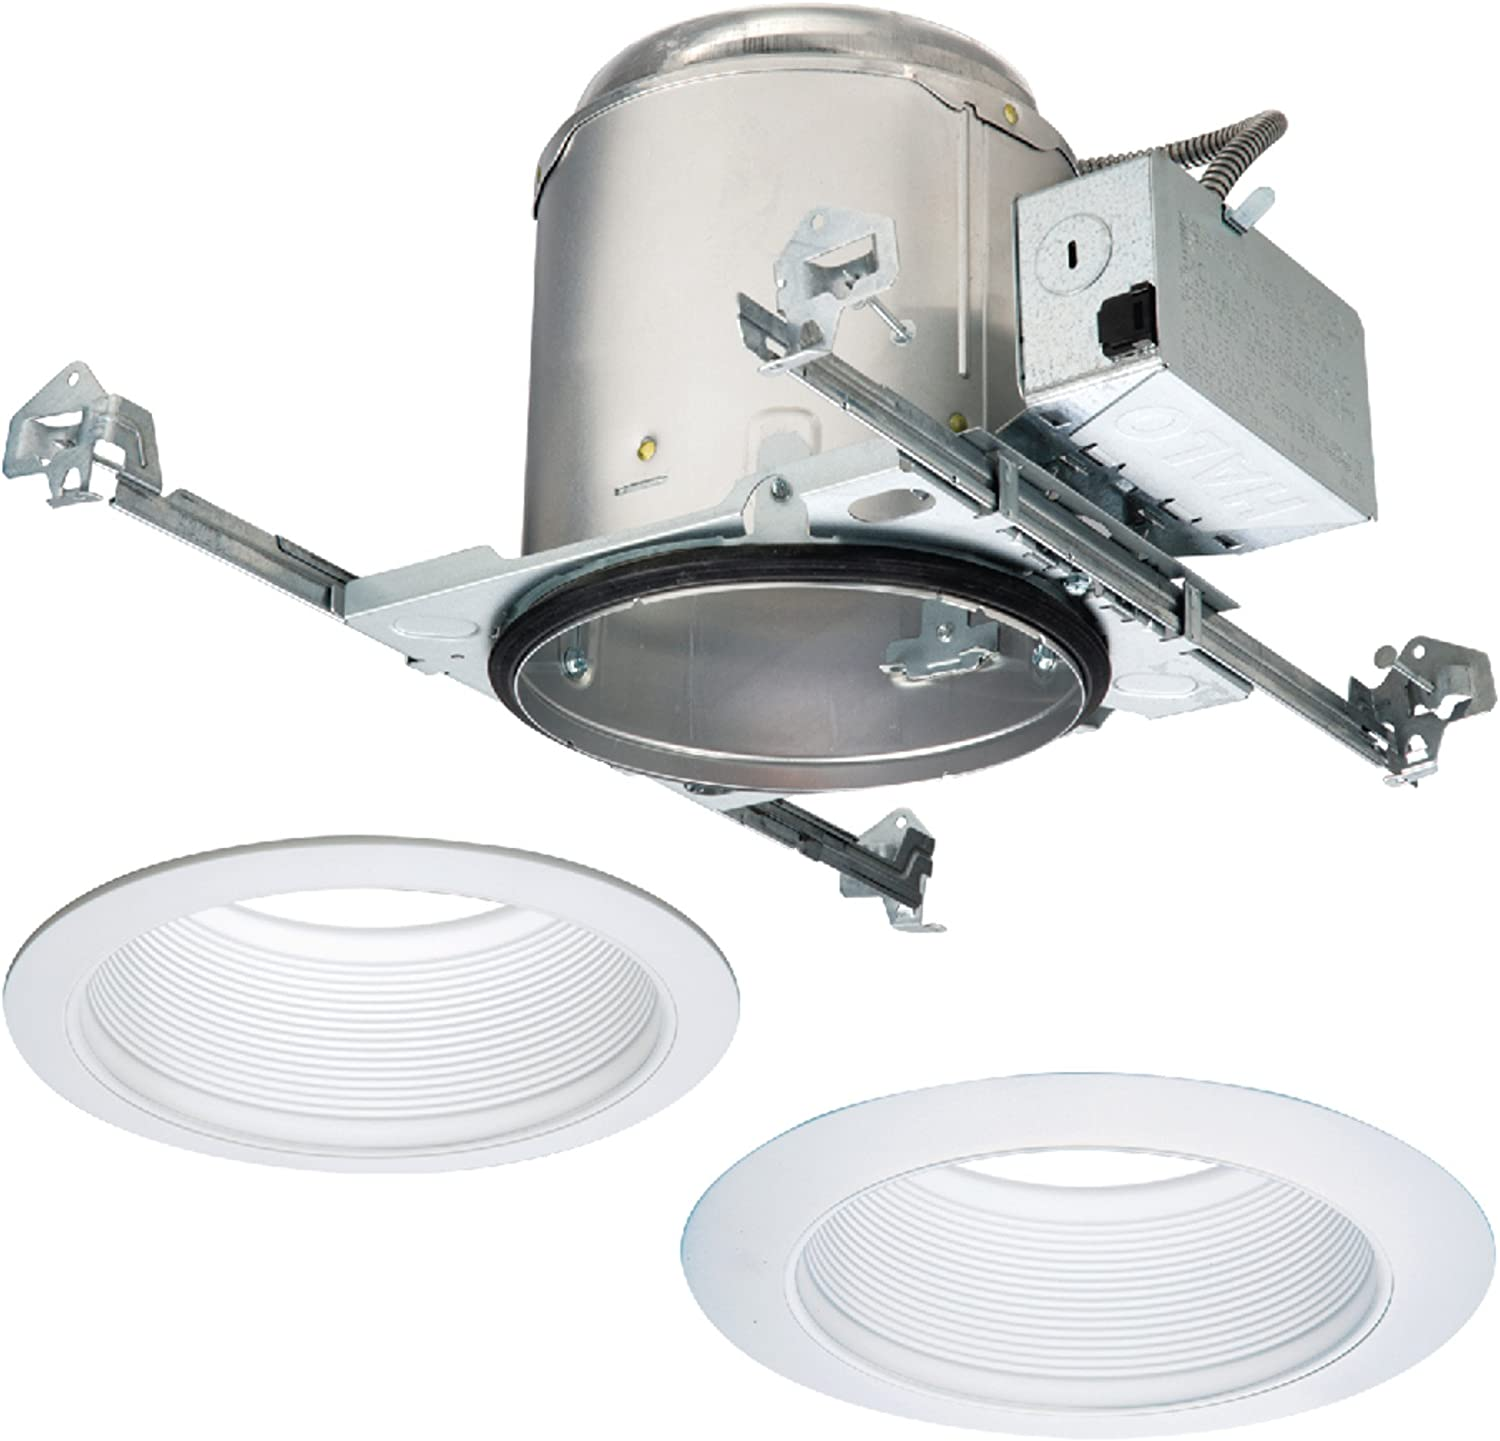 HALO E7ICAT6100WB-6PK E26 Series Recessed Housing with Tapered Baffle (6 Pack), 6 In, White